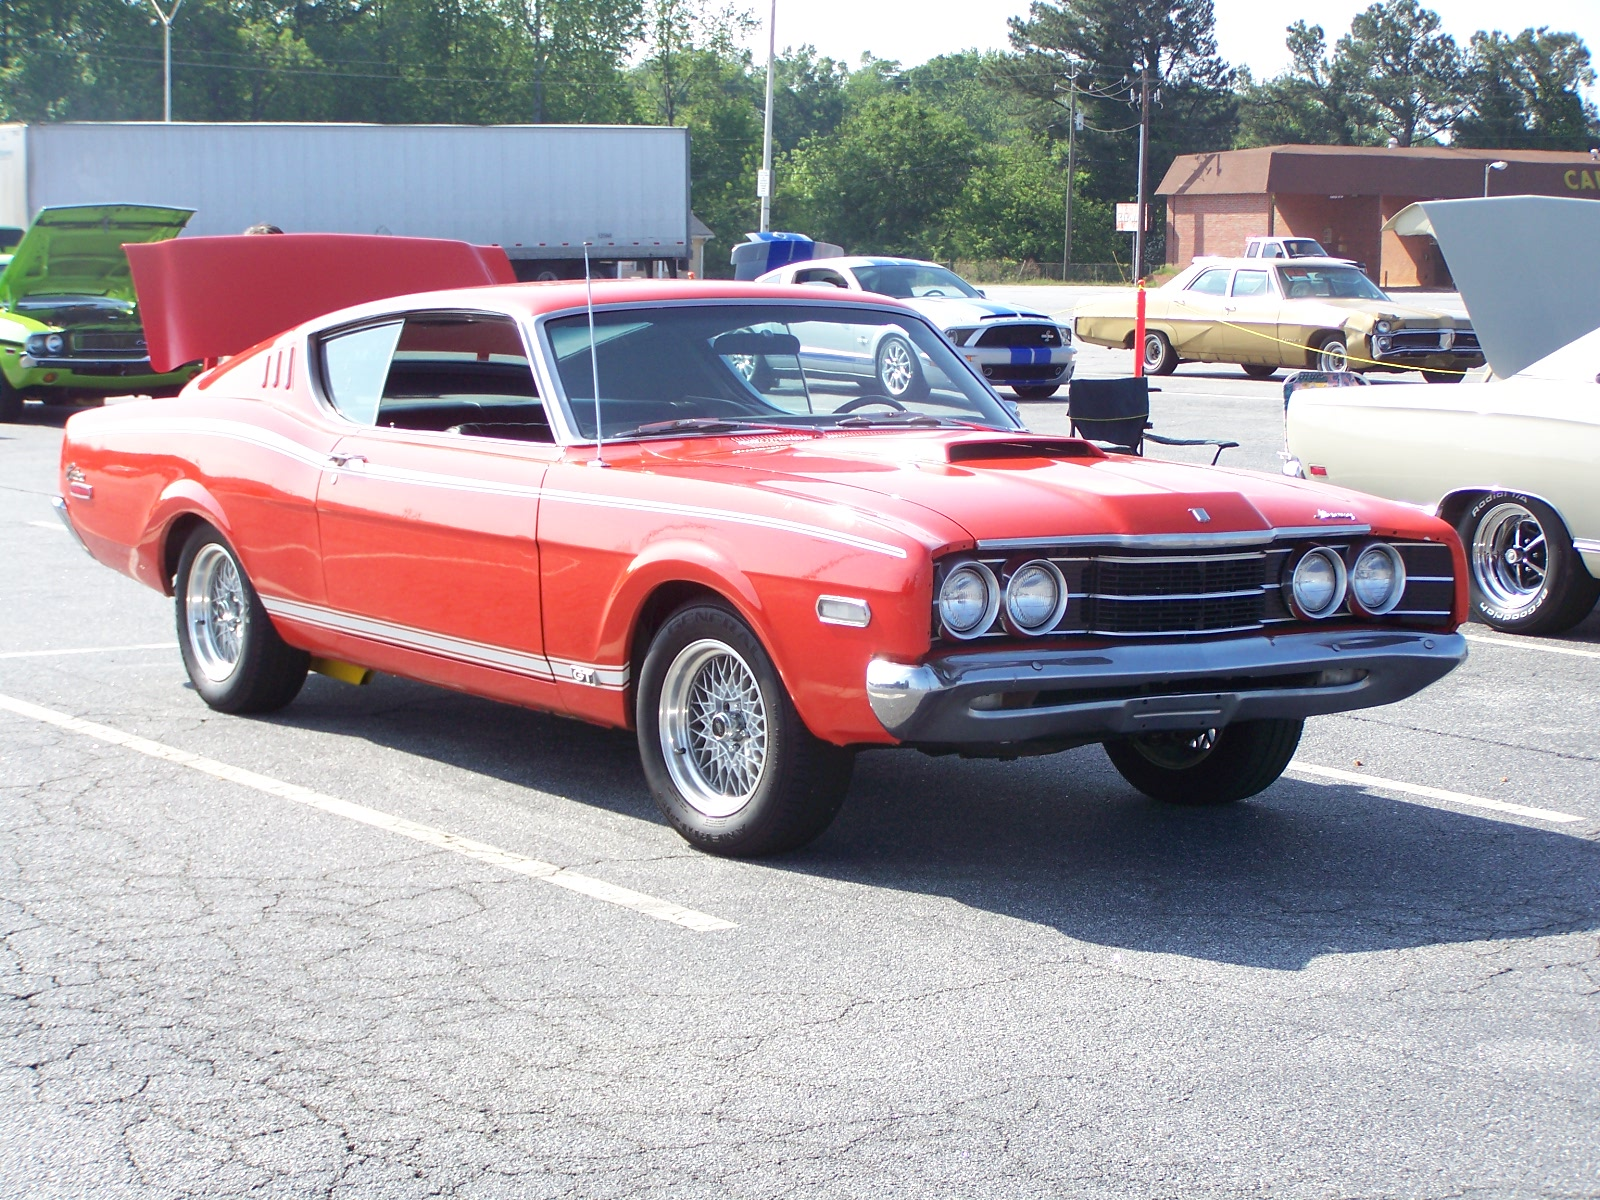 Mercury Cyclone #4